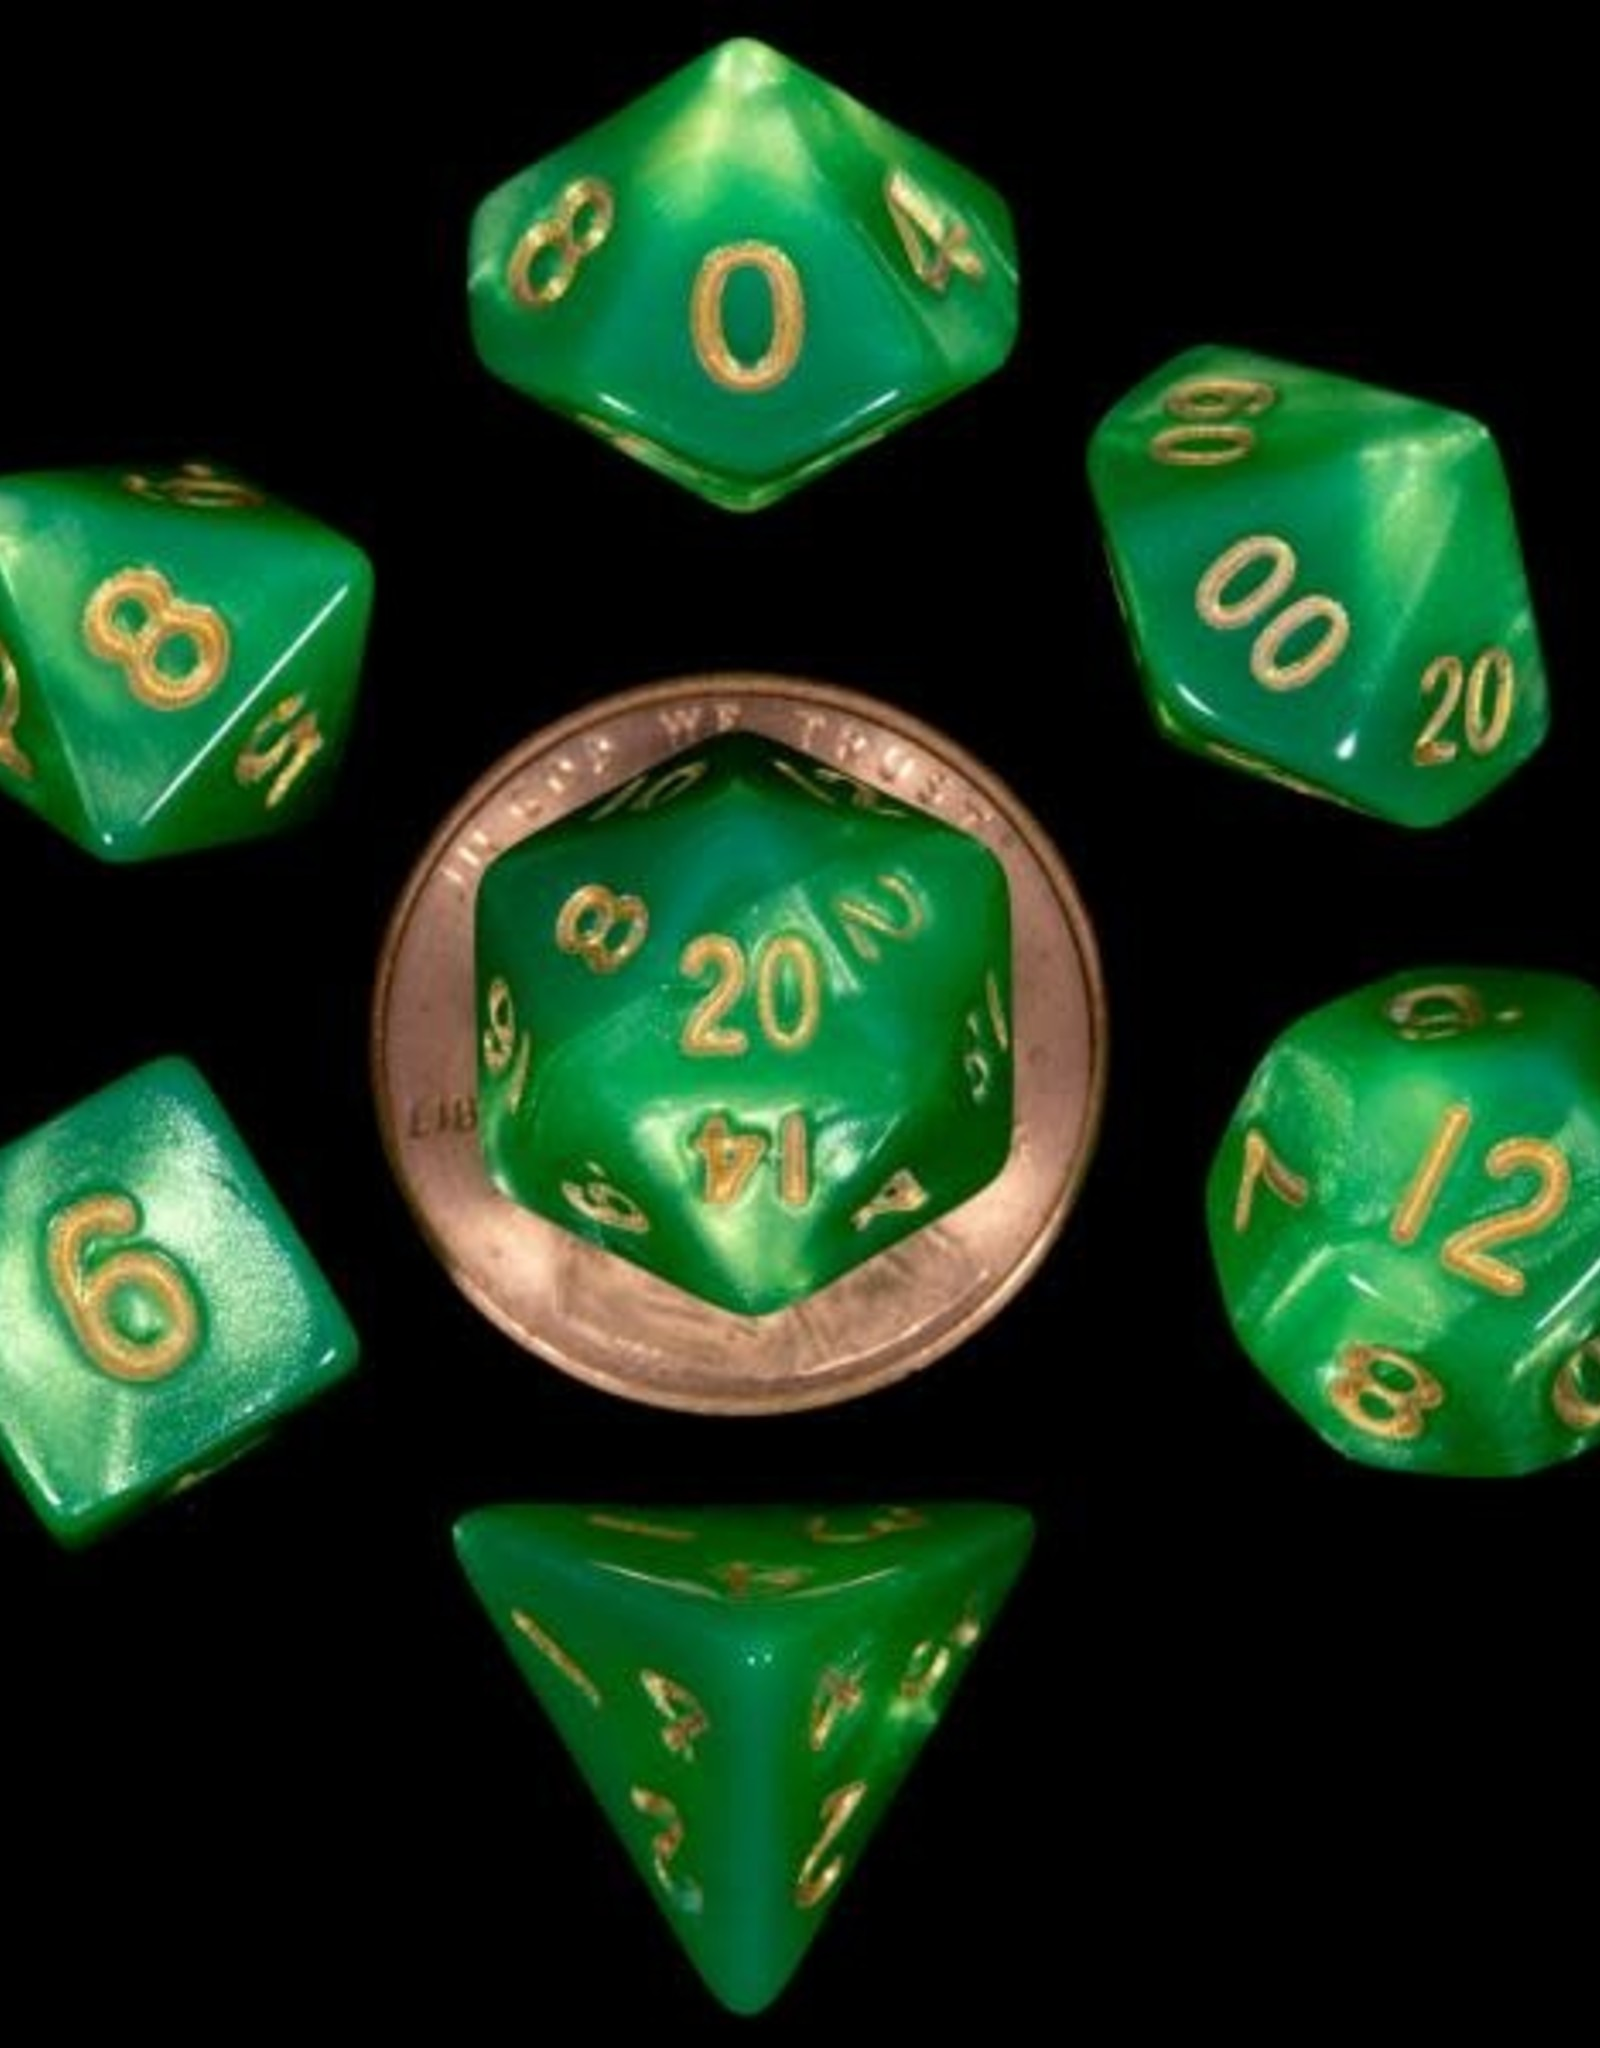 Metallic Dice Games Mini Dice 7 ct. Green w/ Gold